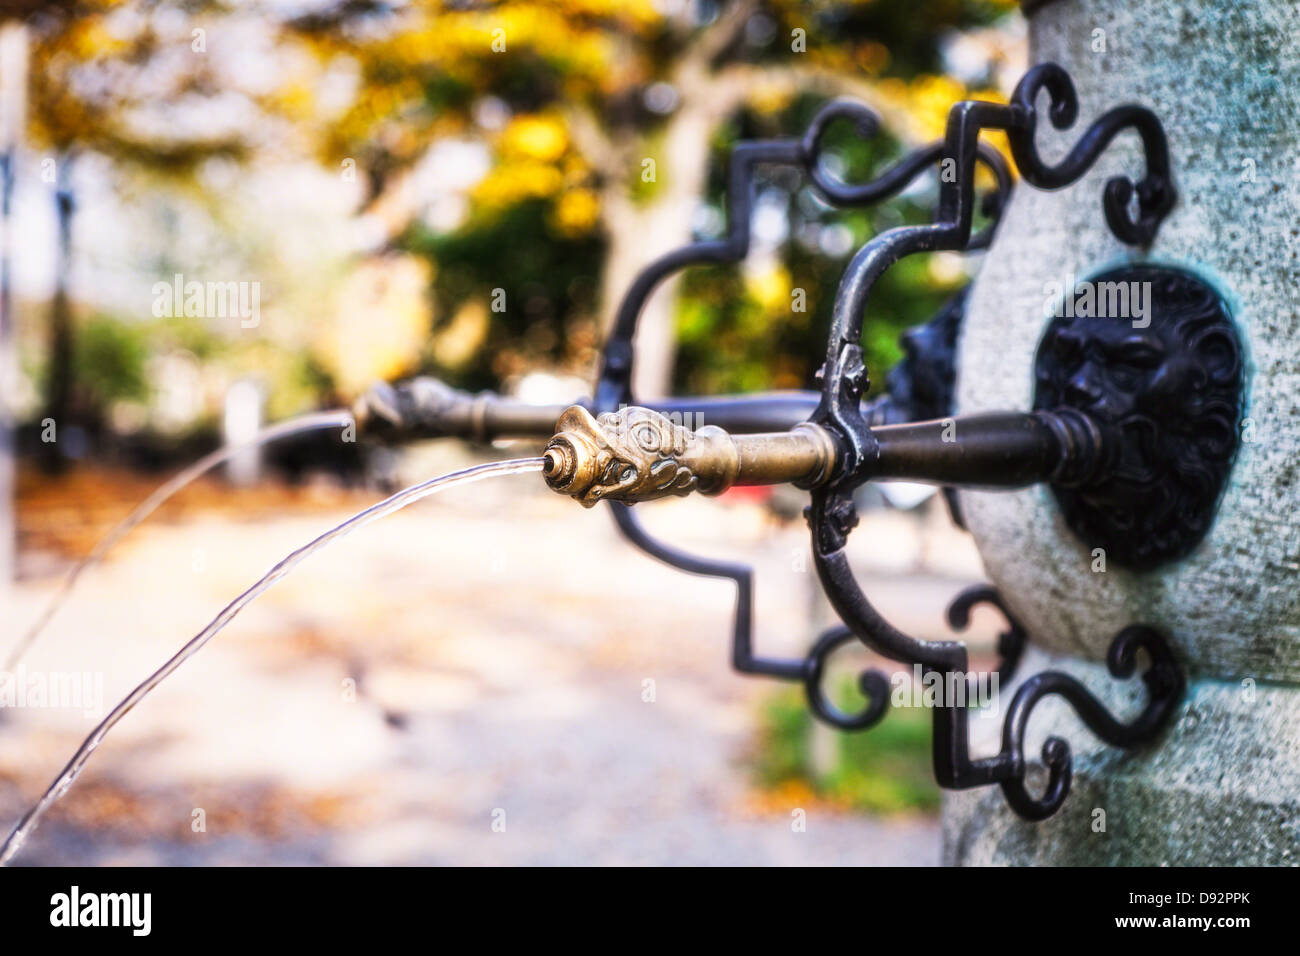 Close Up View of a Waterspout, Lindenhof Fountain, Zurich, Switzerland - Stock Image